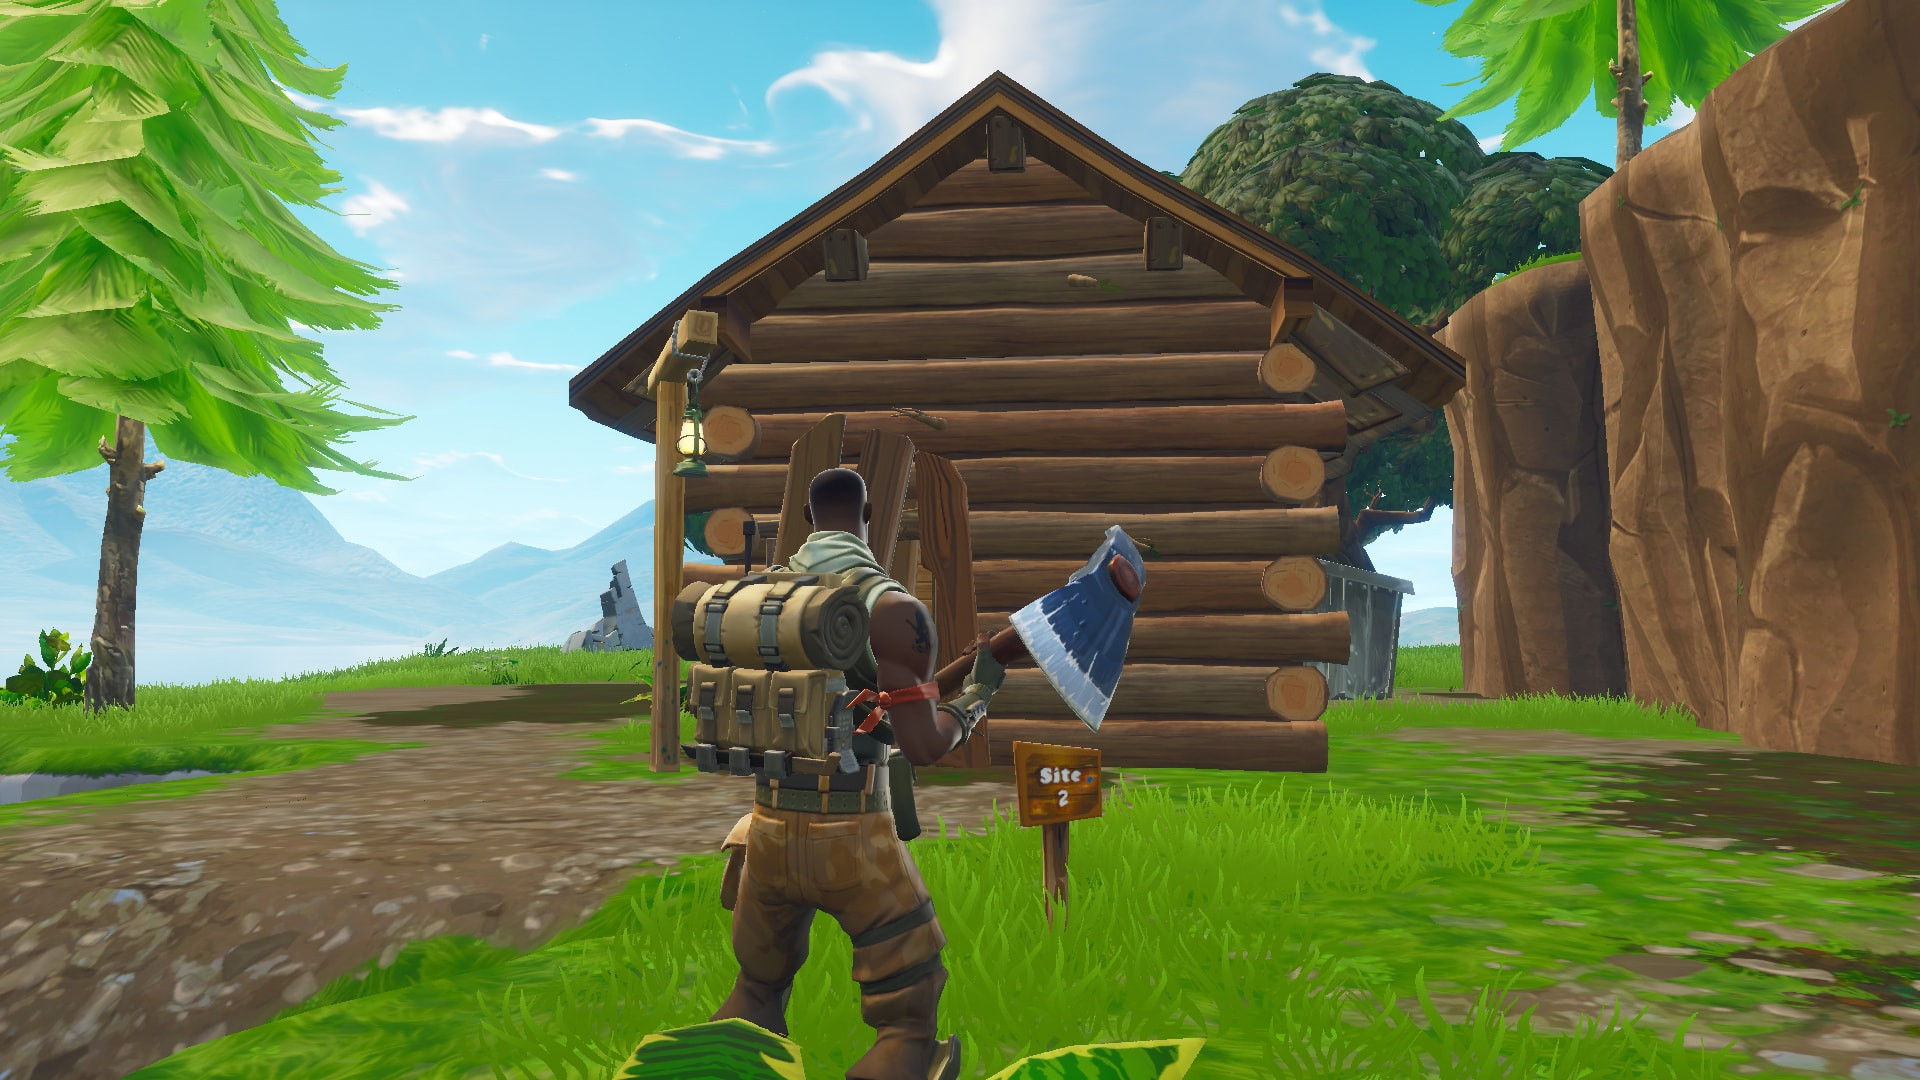 Chest Location 3 in Lonely Lodge | Fortnite - zilliongamer your game guide